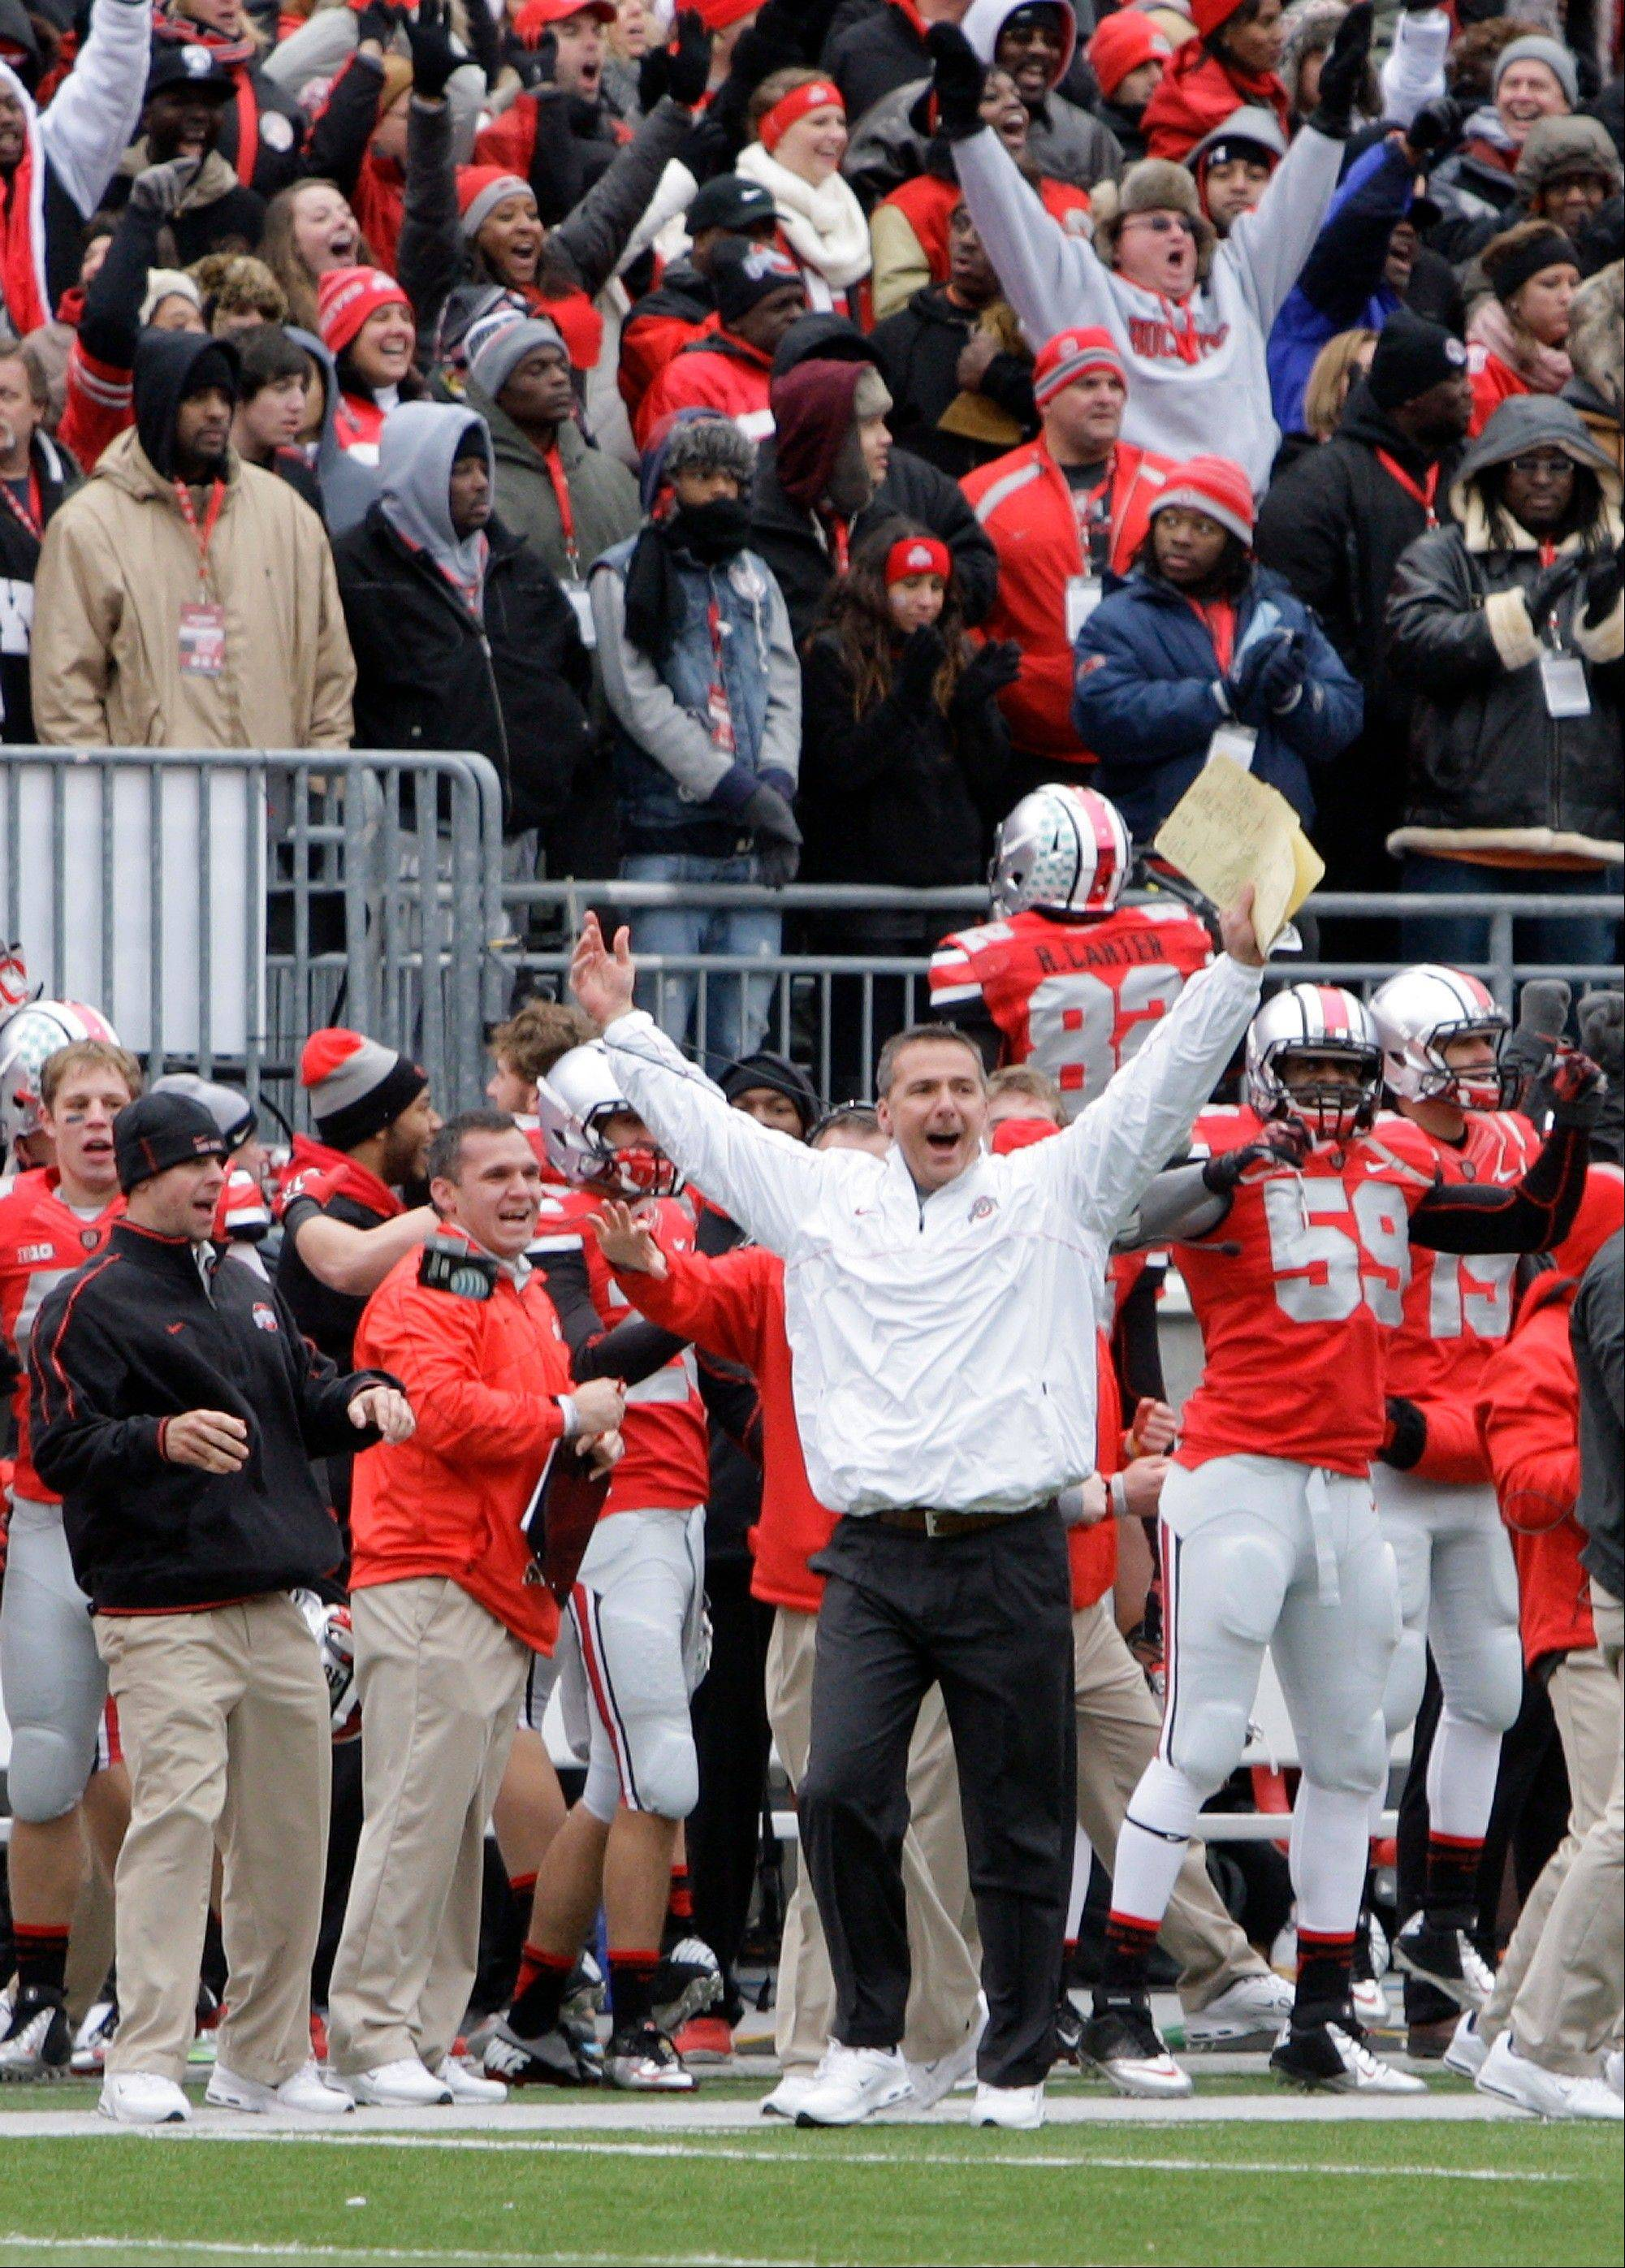 No. 3 Ohio State aiming to avoid upset at Michigan